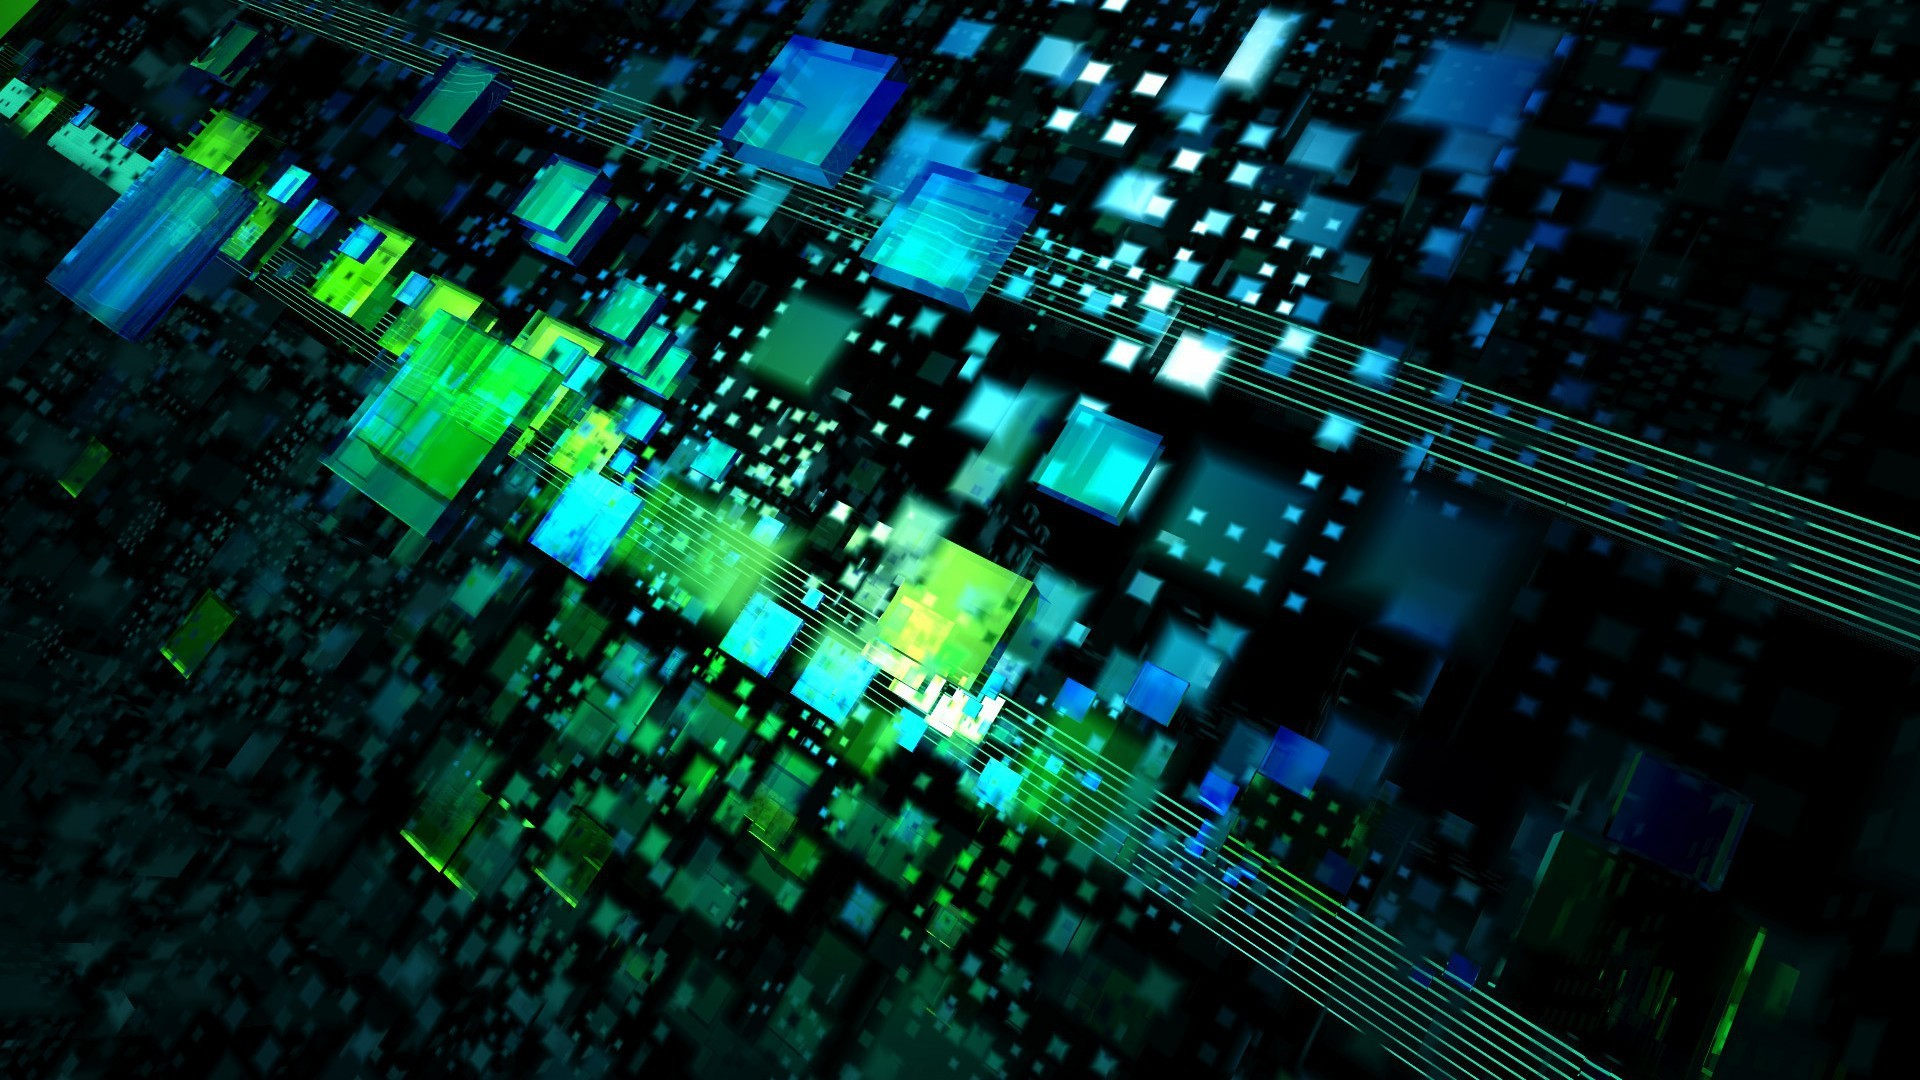 1920x1080 CHIP WALLPAPERS FREE Wallpapers & Background images - hippowallpapers .